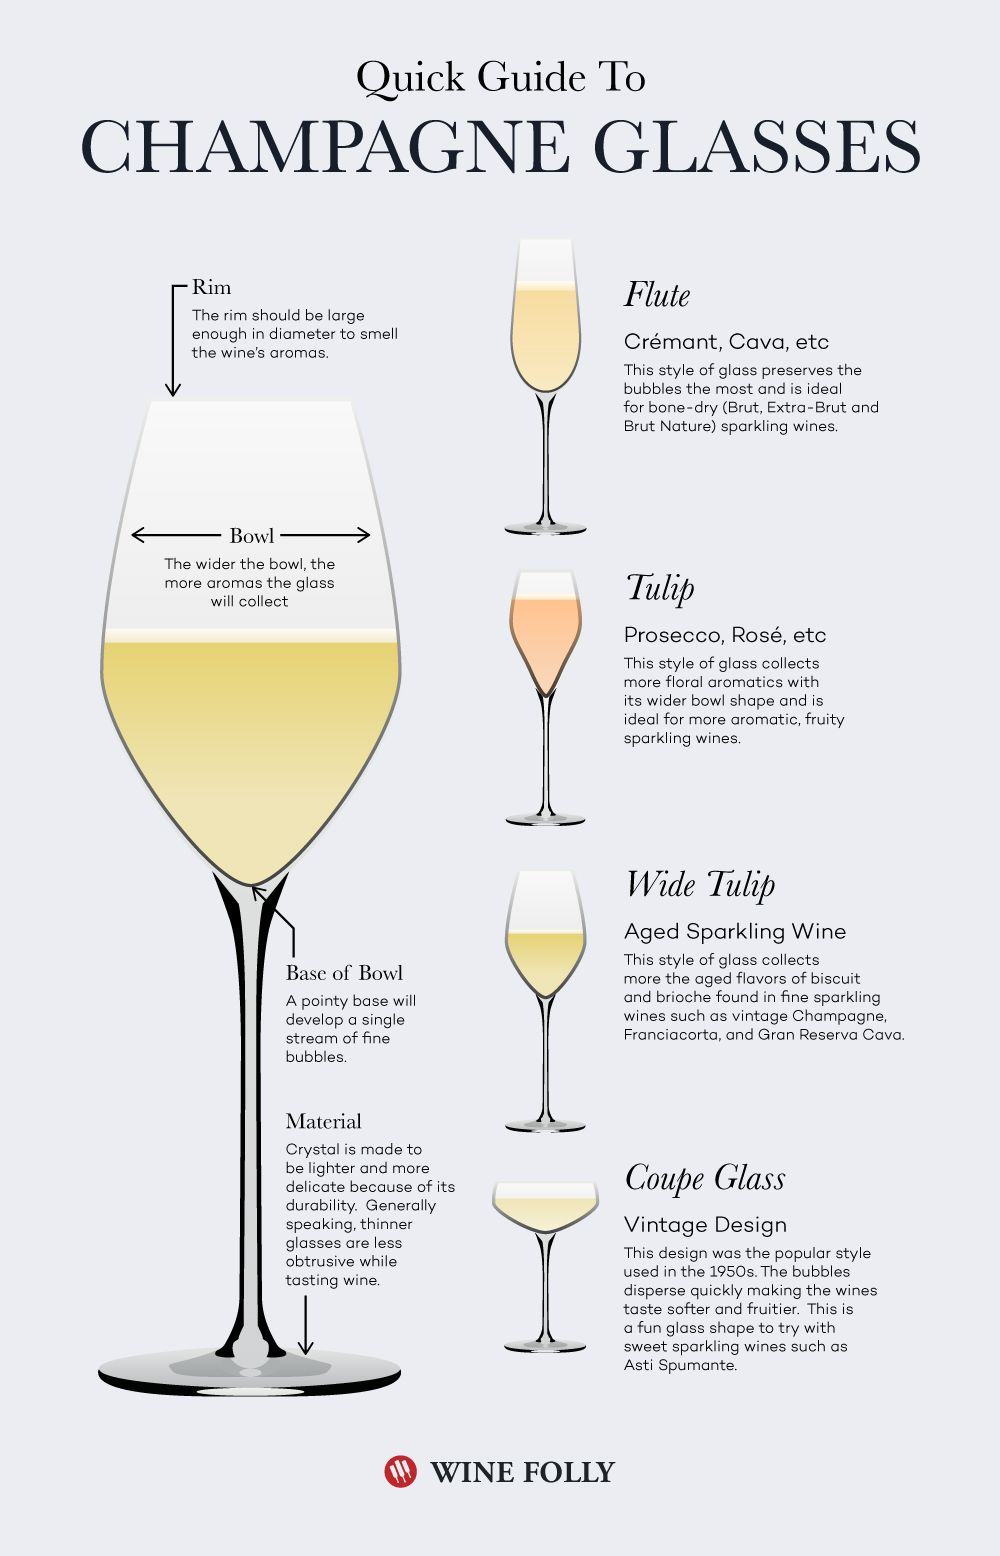 2545389e62c5 Guide to Champagne Glasses and Flutes. There are a few styles of sparkling  glassware